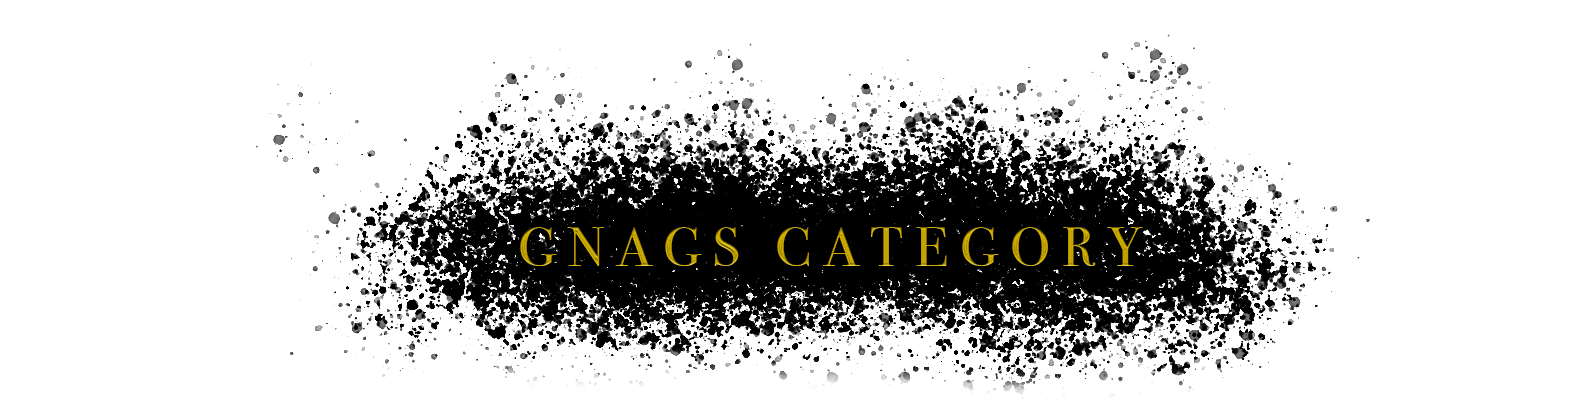 Gnags_Category.png